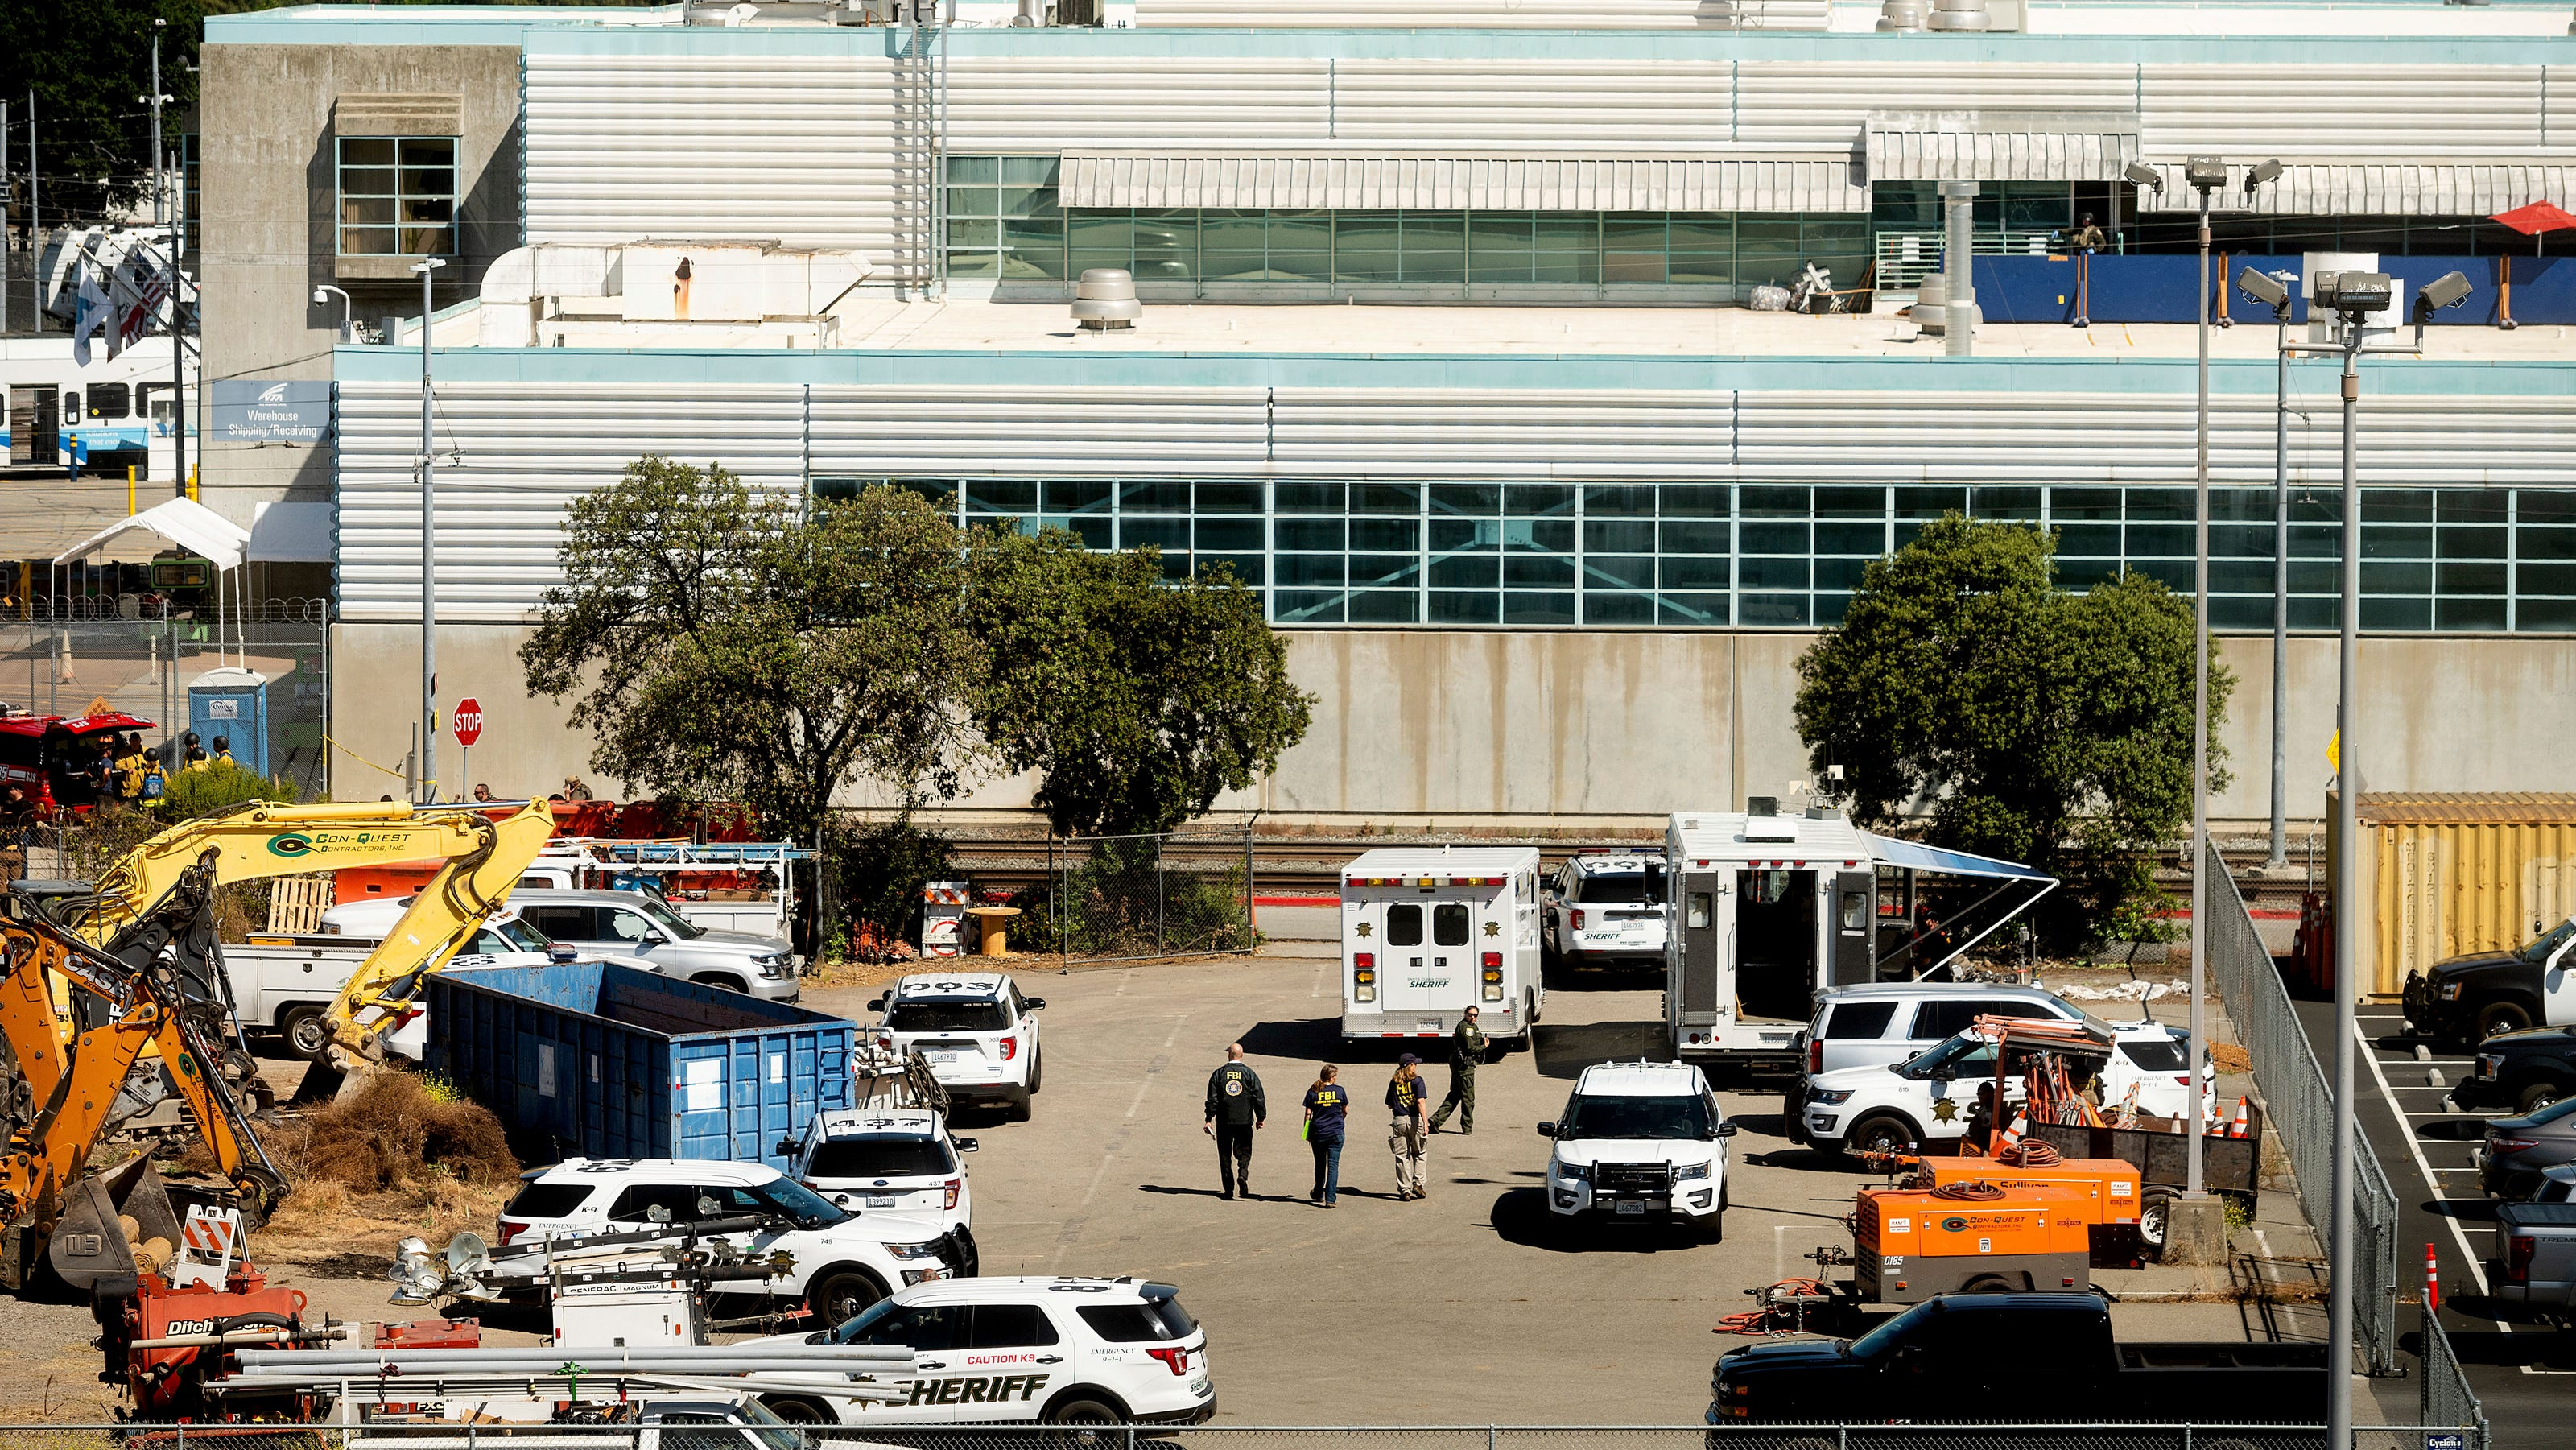 San Jose wasn't alerted that feds once detained rail yard killer for terrorist books, hateful writings, DA says